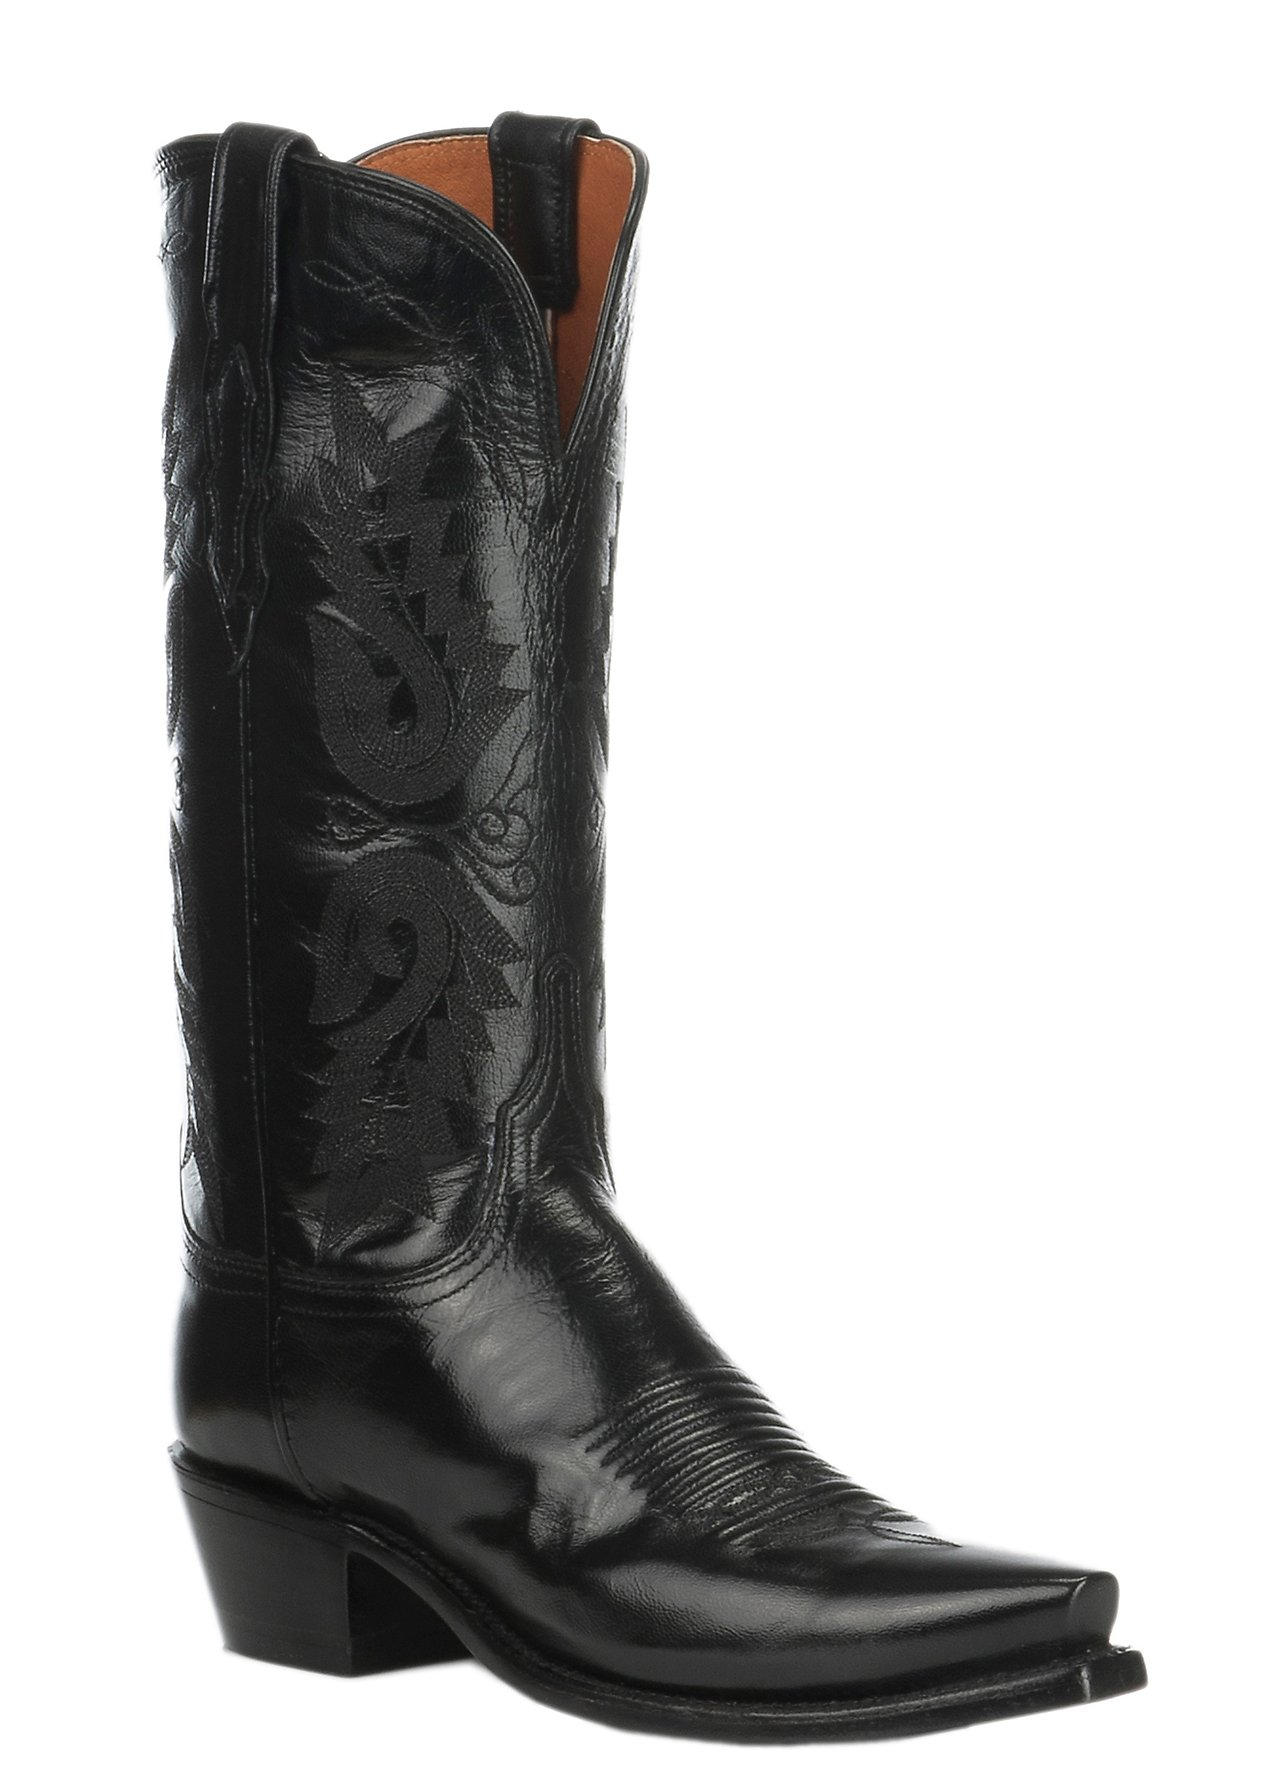 Lucchese Leather Knee-High Boots